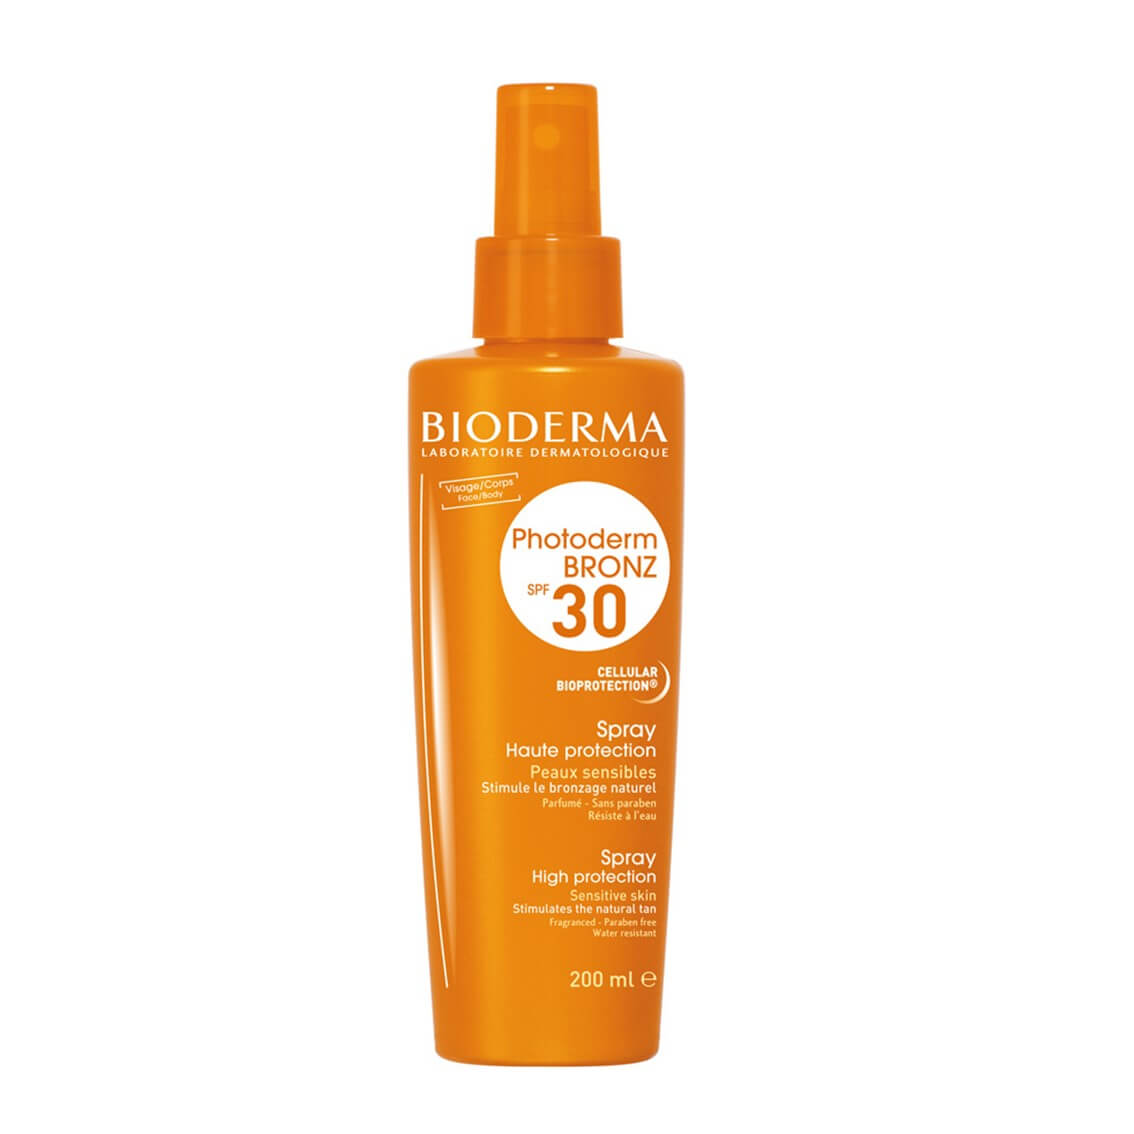 Photoderm Bronz Aceite Spf30 200 ml